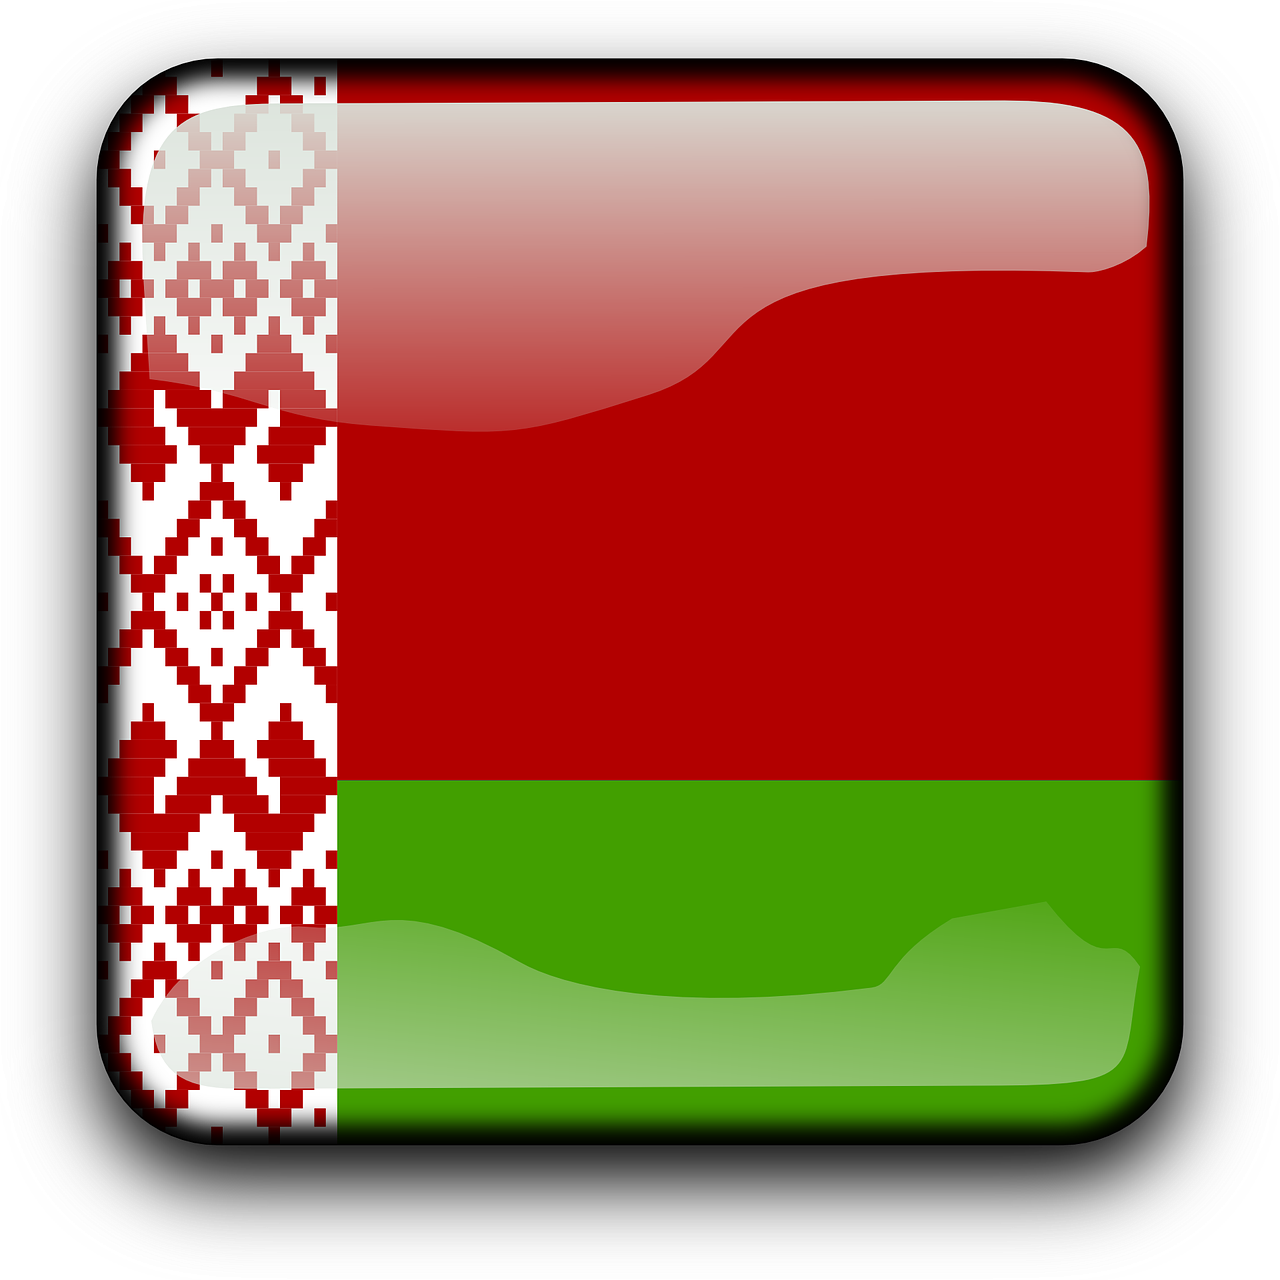 belarus,flag,country,nationality,square,button,glossy,free vector graphics,free pictures, free photos, free images, royalty free, free illustrations, public domain